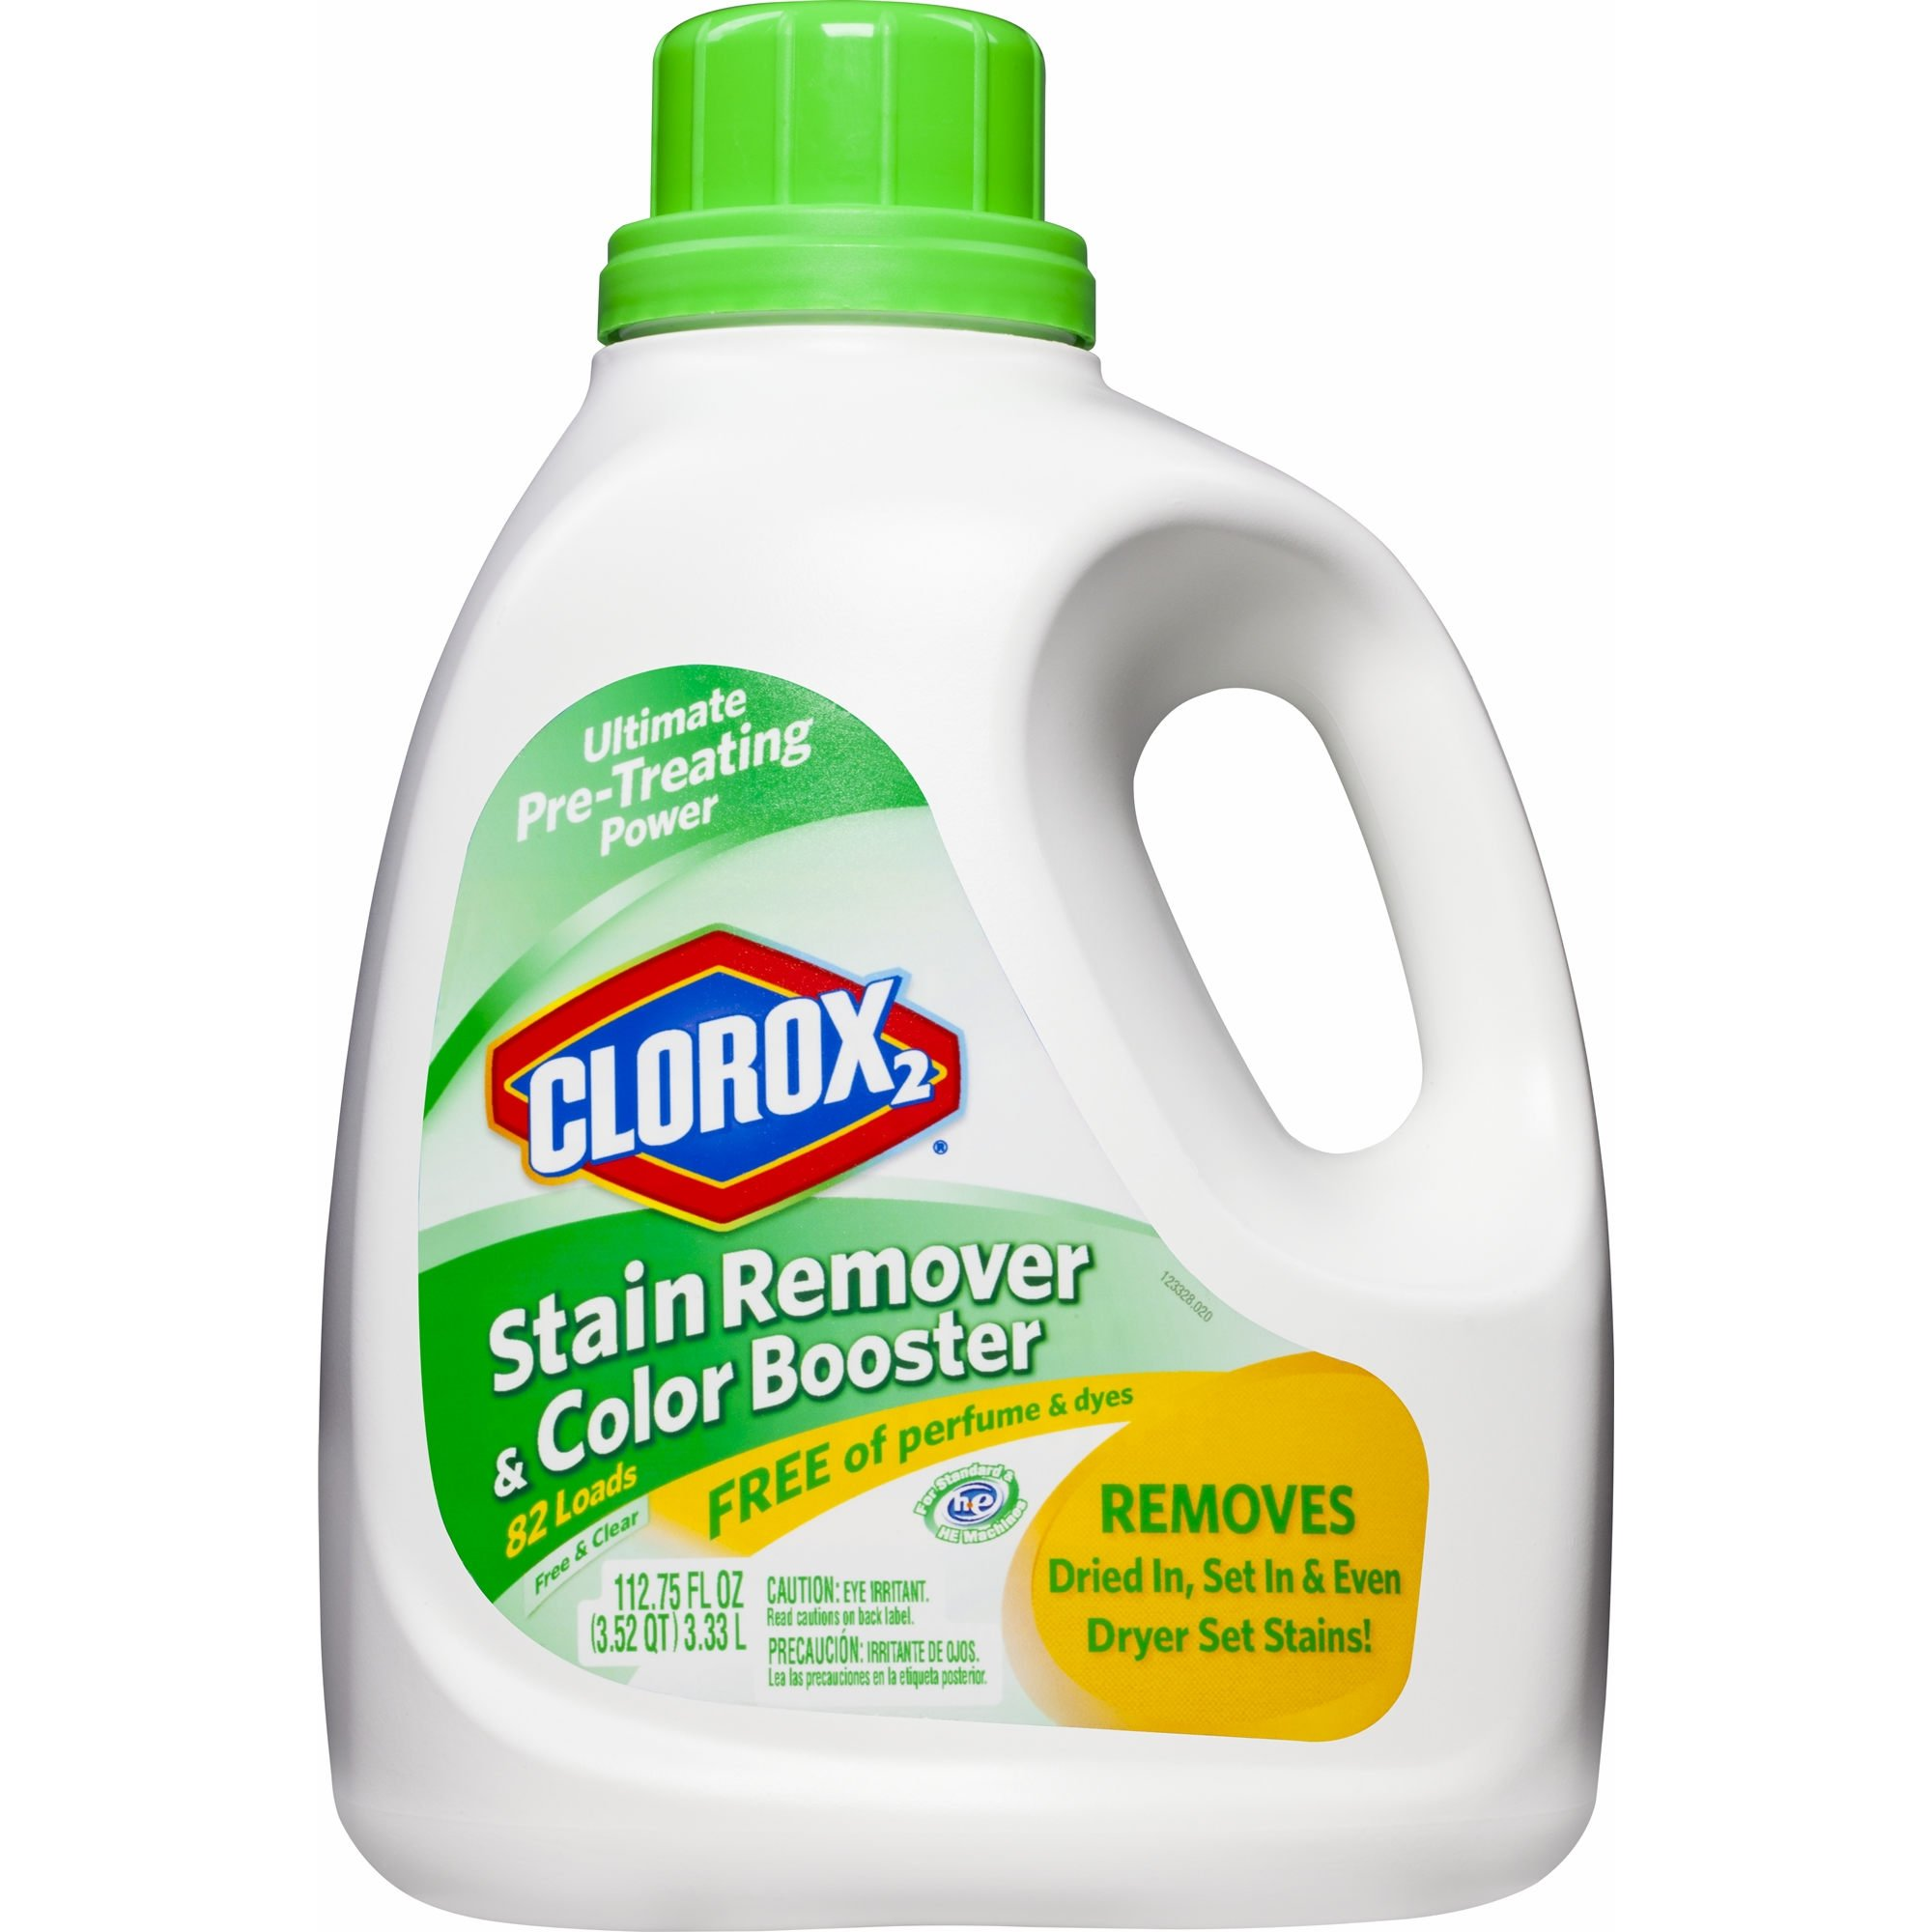 Clorox 2 Liquid Stain Remover & Color Booster Free & Clear,112.75 oz. (pack of 6)